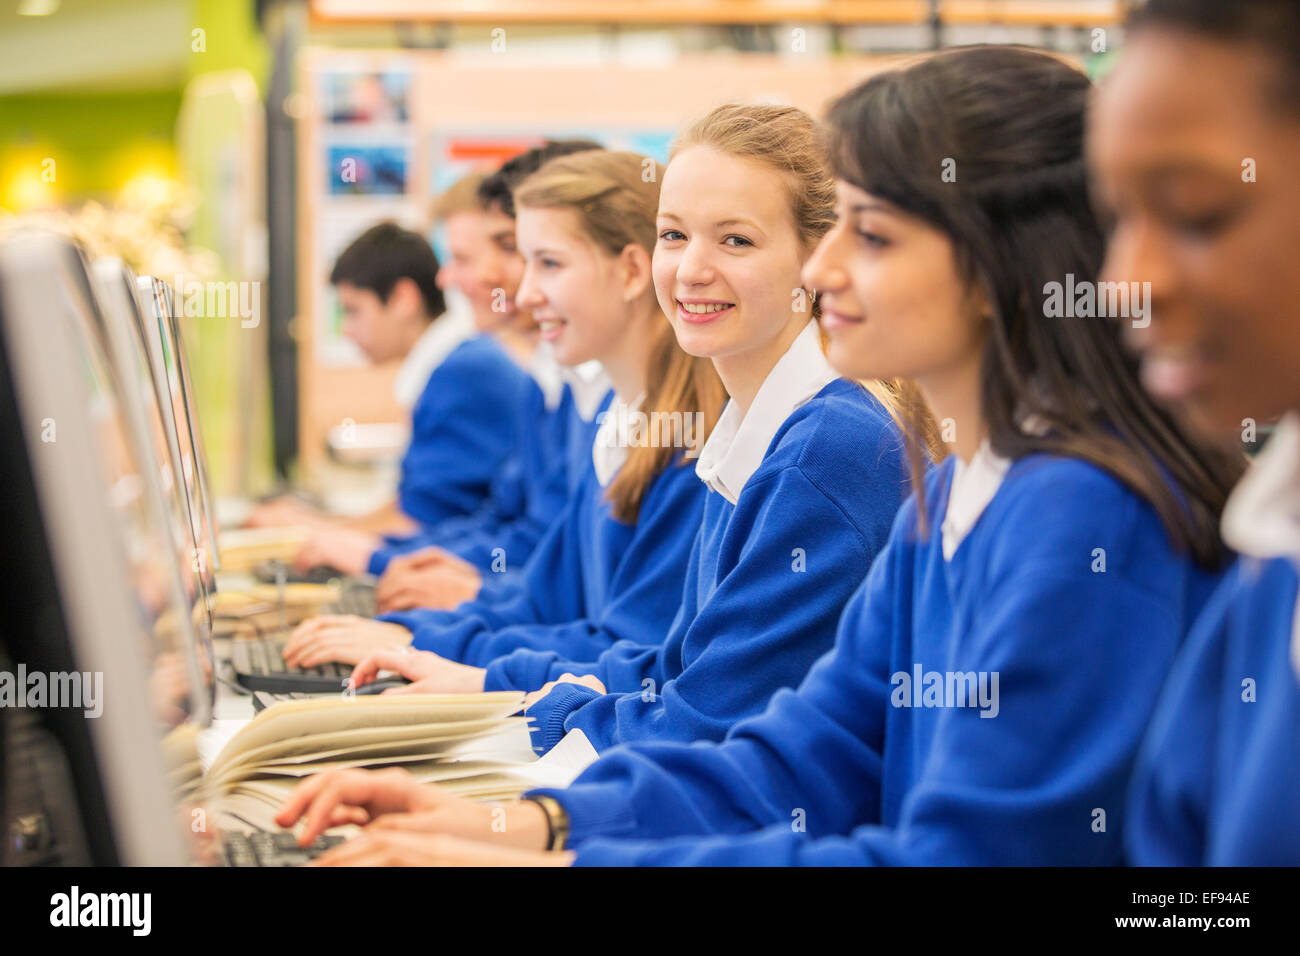 Students sitting in row during IT lesson - Stock Image